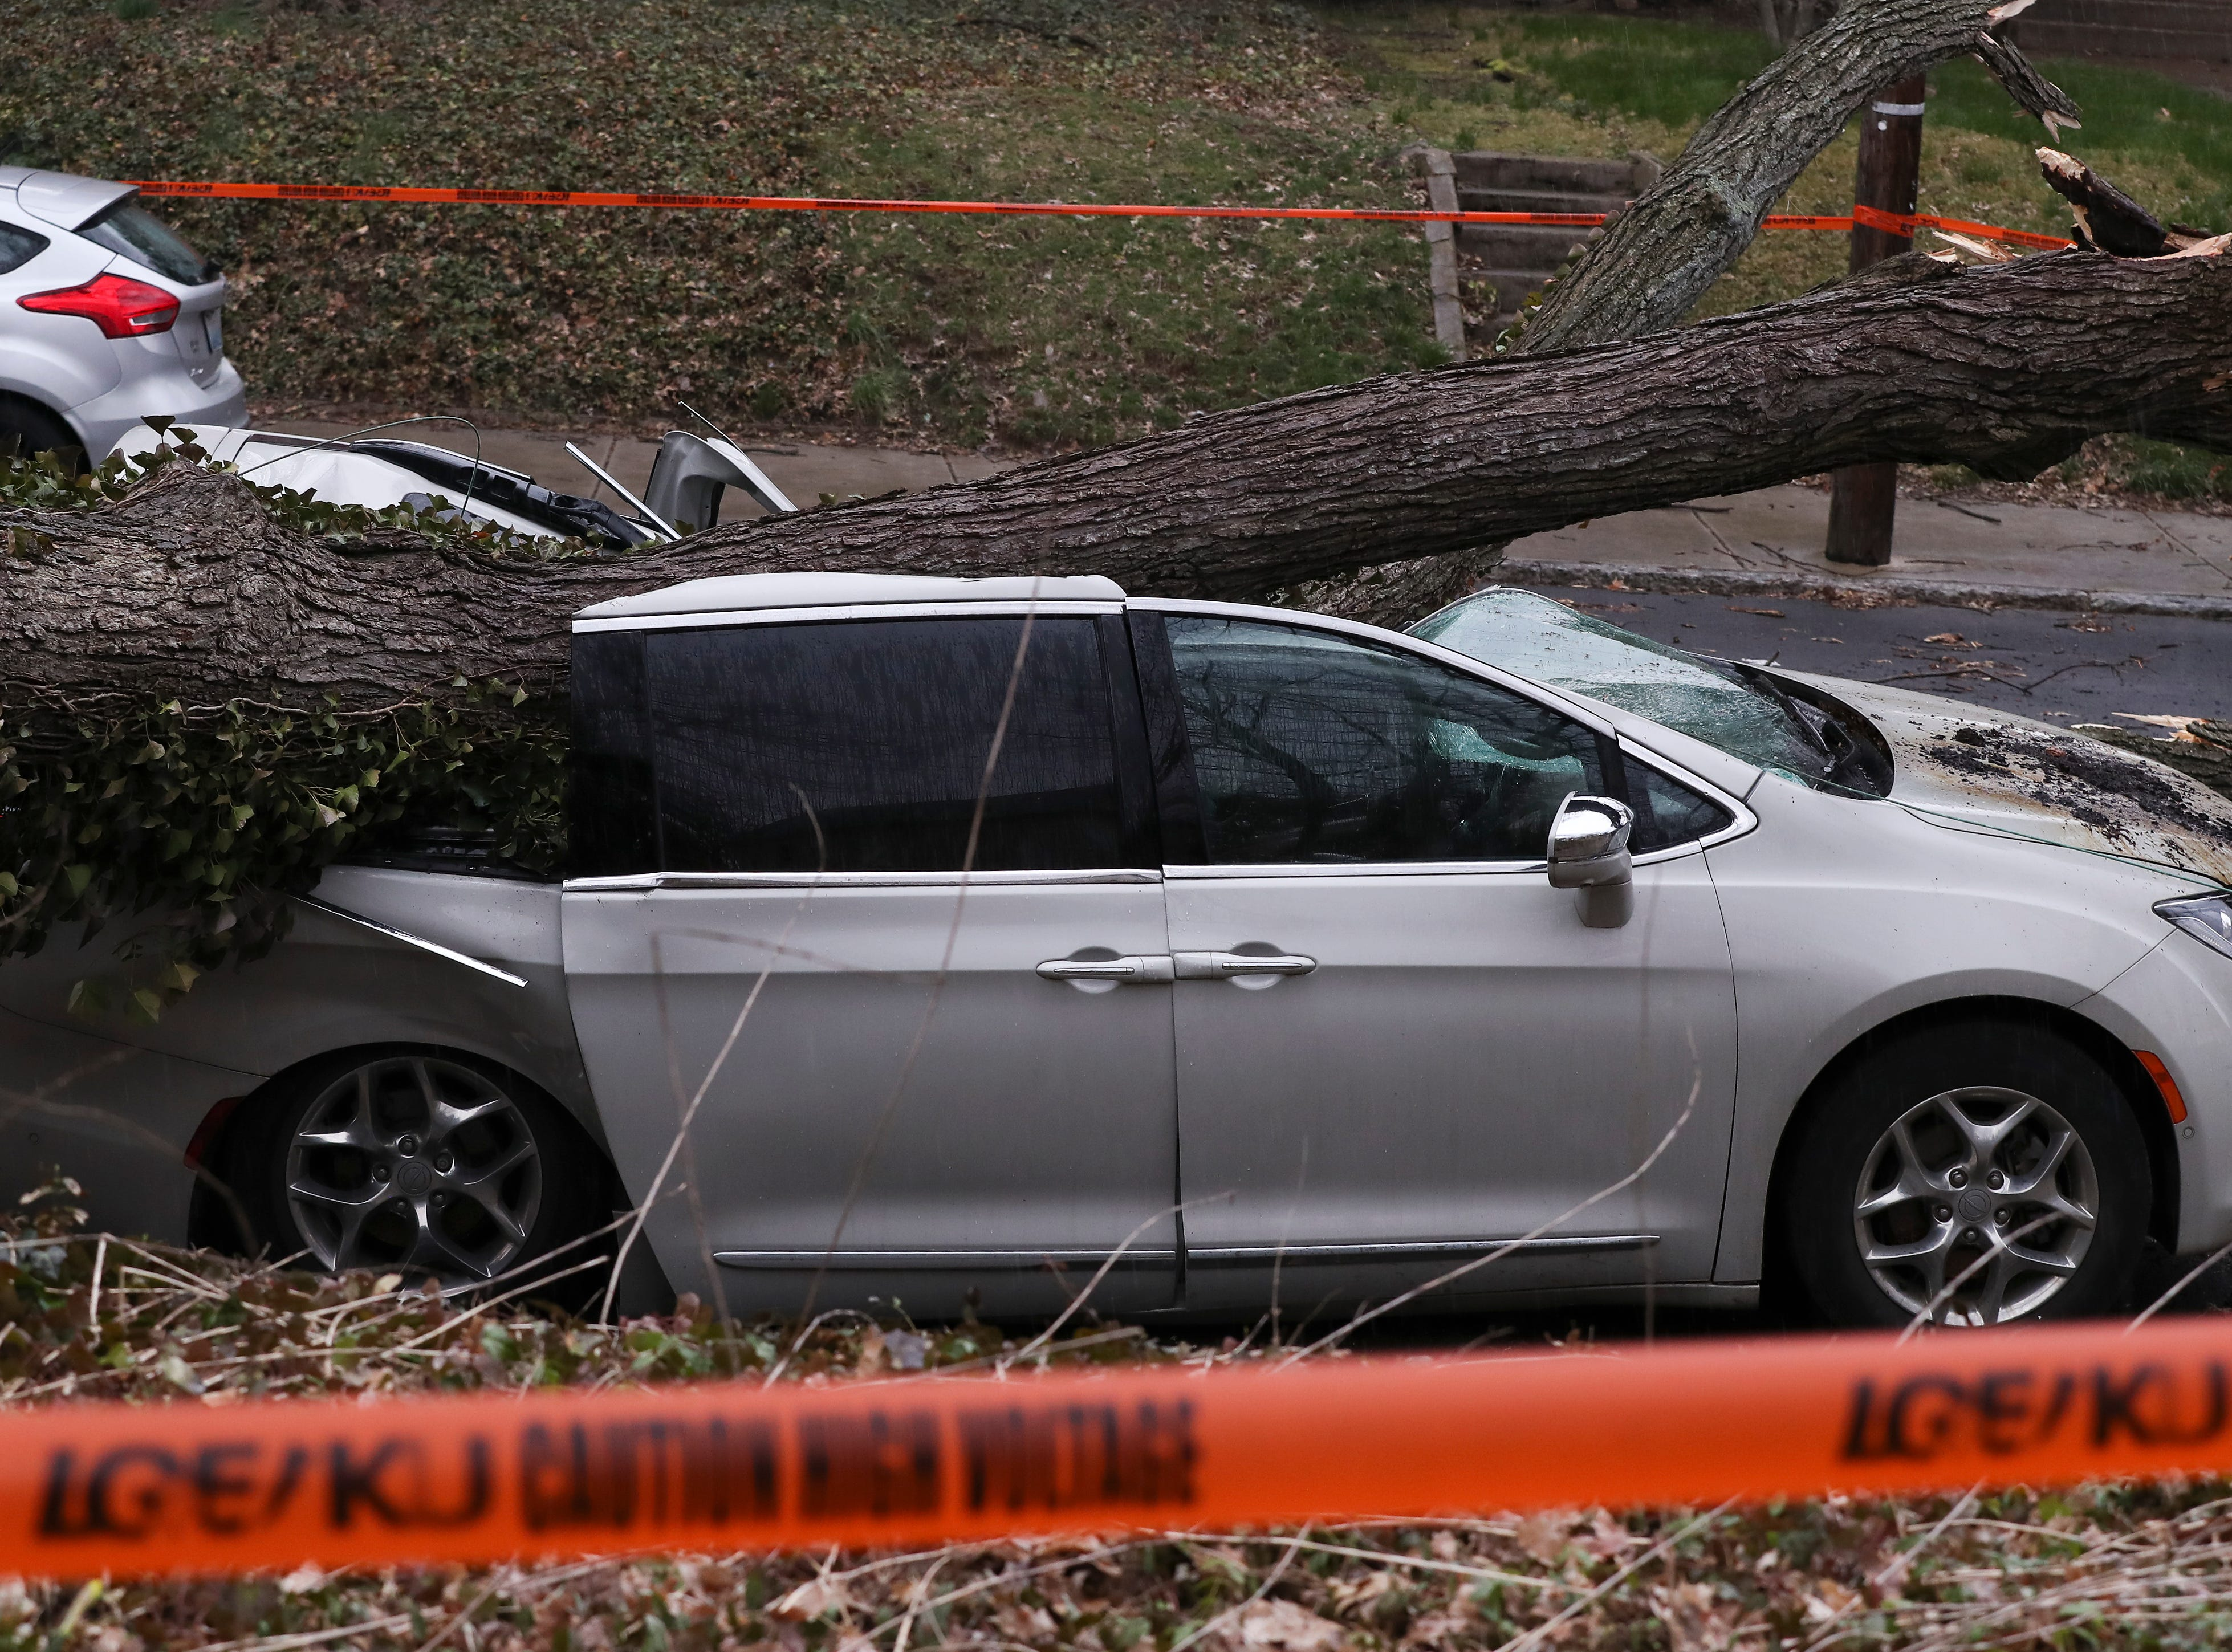 A van was damaged due to high winds that toppled a tree on Hebpurn Ave. in the Highlands.  The owner was out of town to spend the final days with her dying father who passed early Thursday morning. Mar. 14, 2019